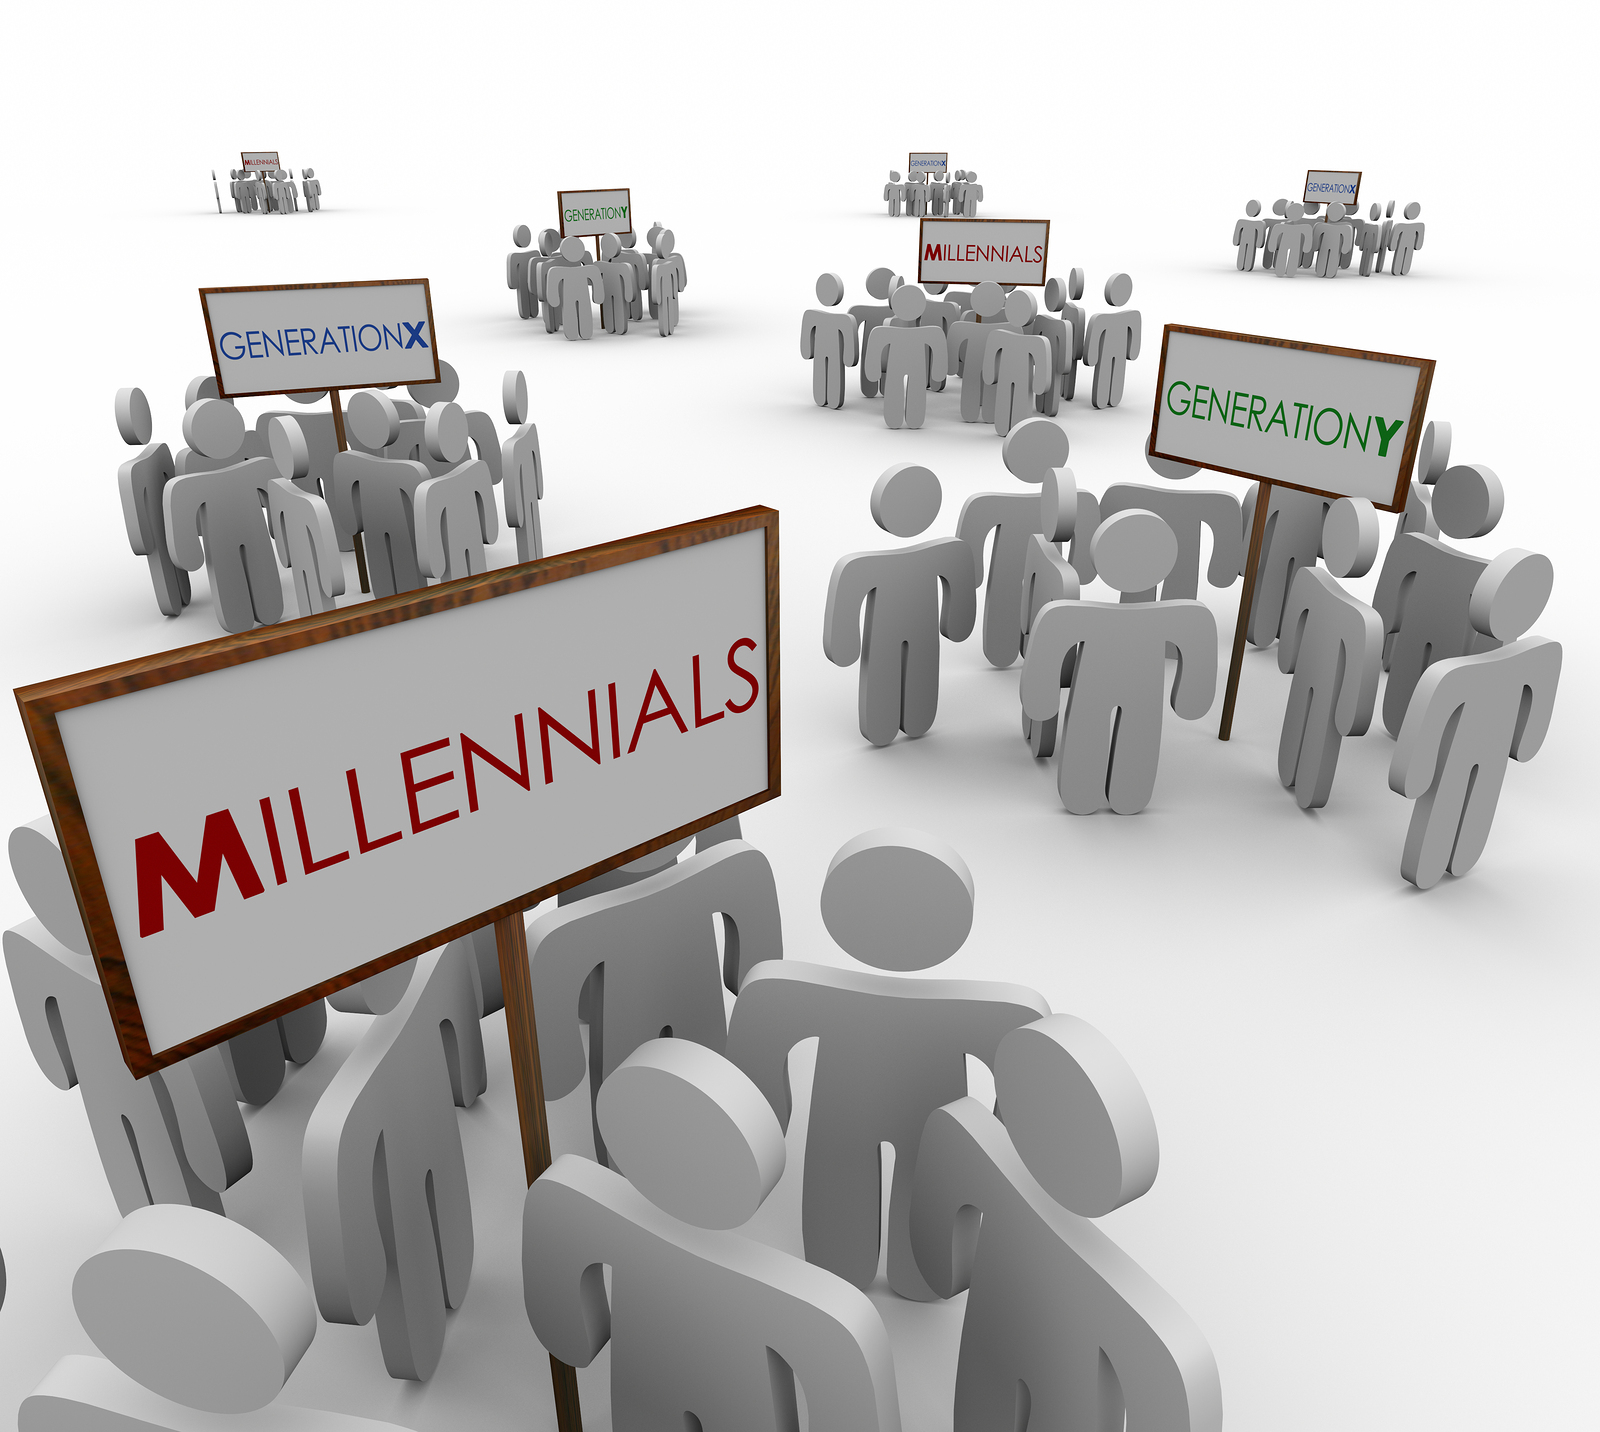 as the largest share of the labor force millennials could shape as the largest share of the labor force millennials could shape workplace policies insidesources